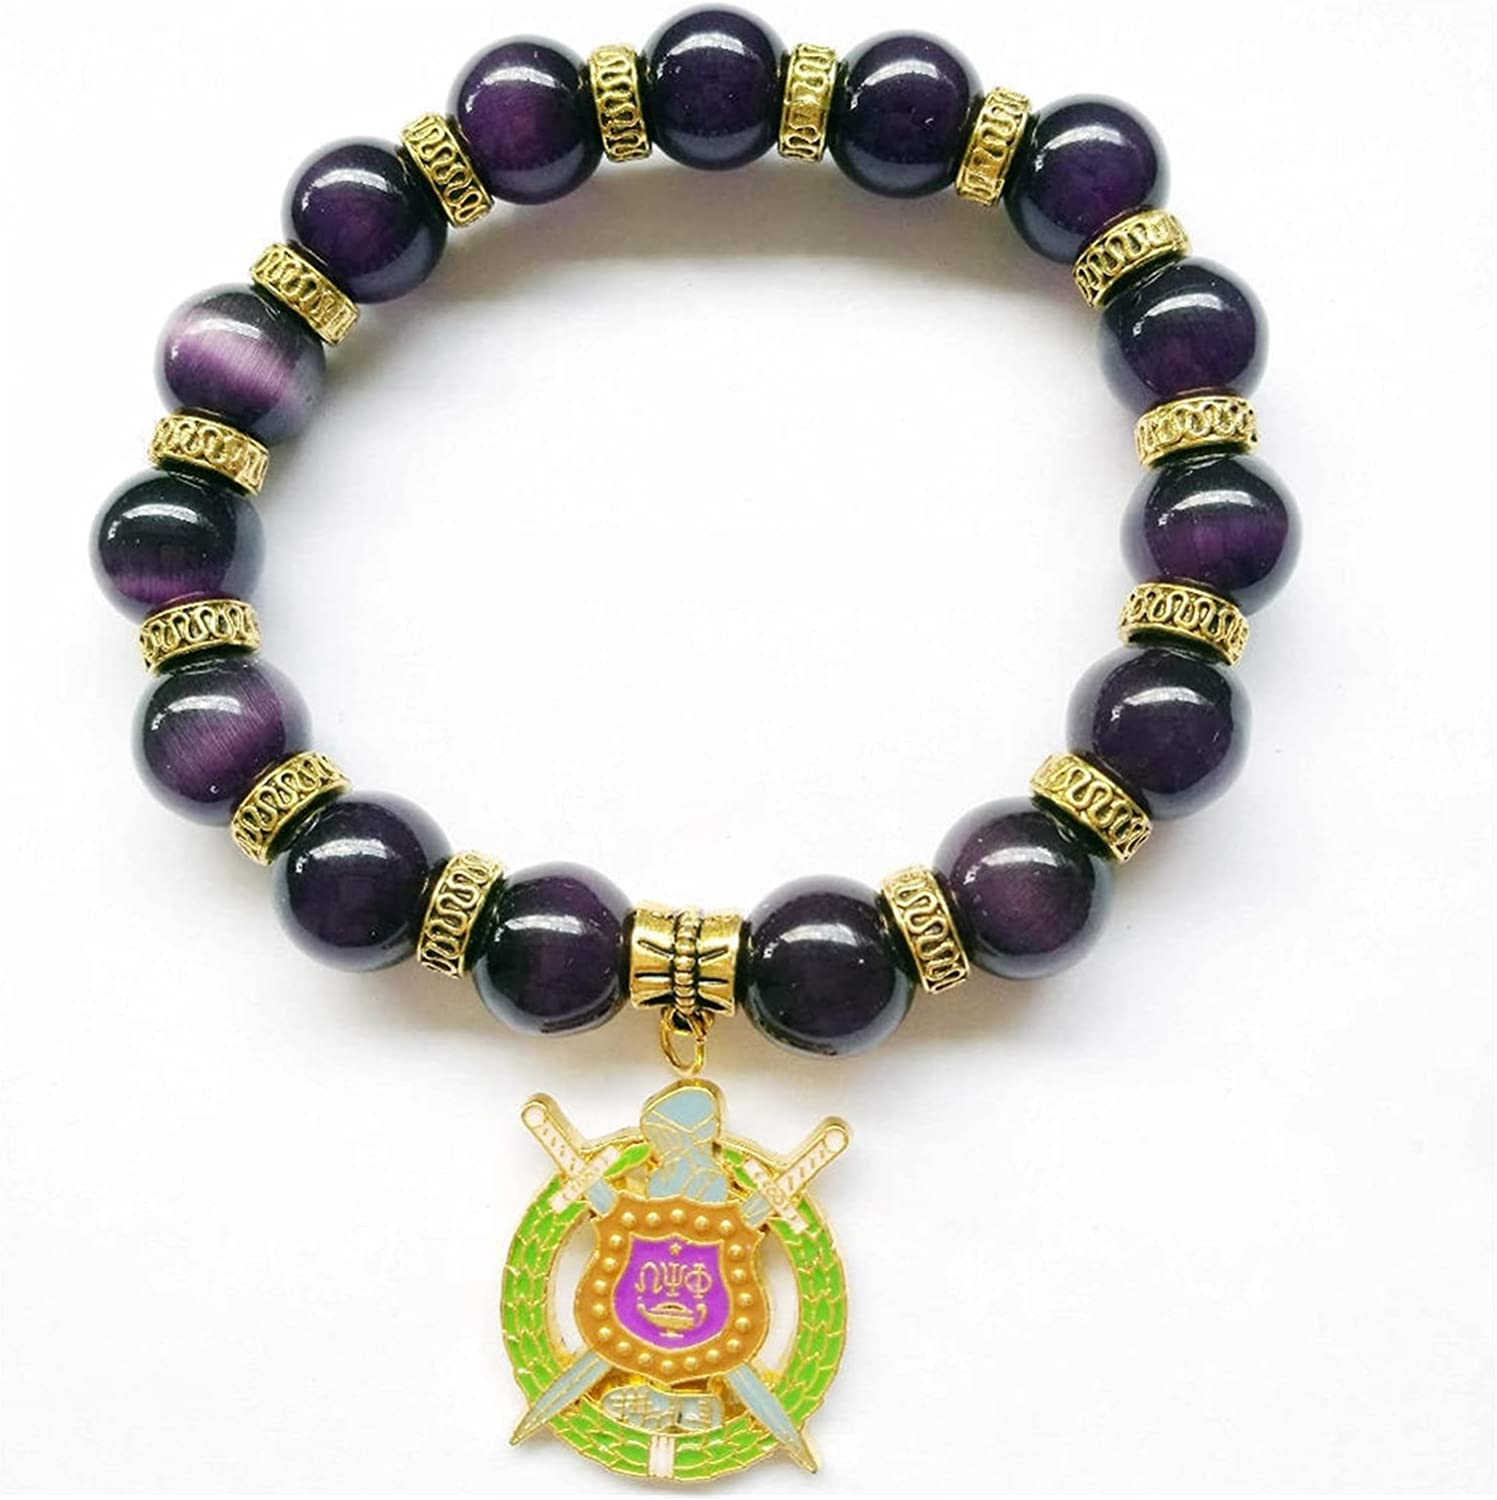 GaYouny Eye Beads Bracelets Bangles Rope Reservation Natural Chain Max 59% OFF Jewelry